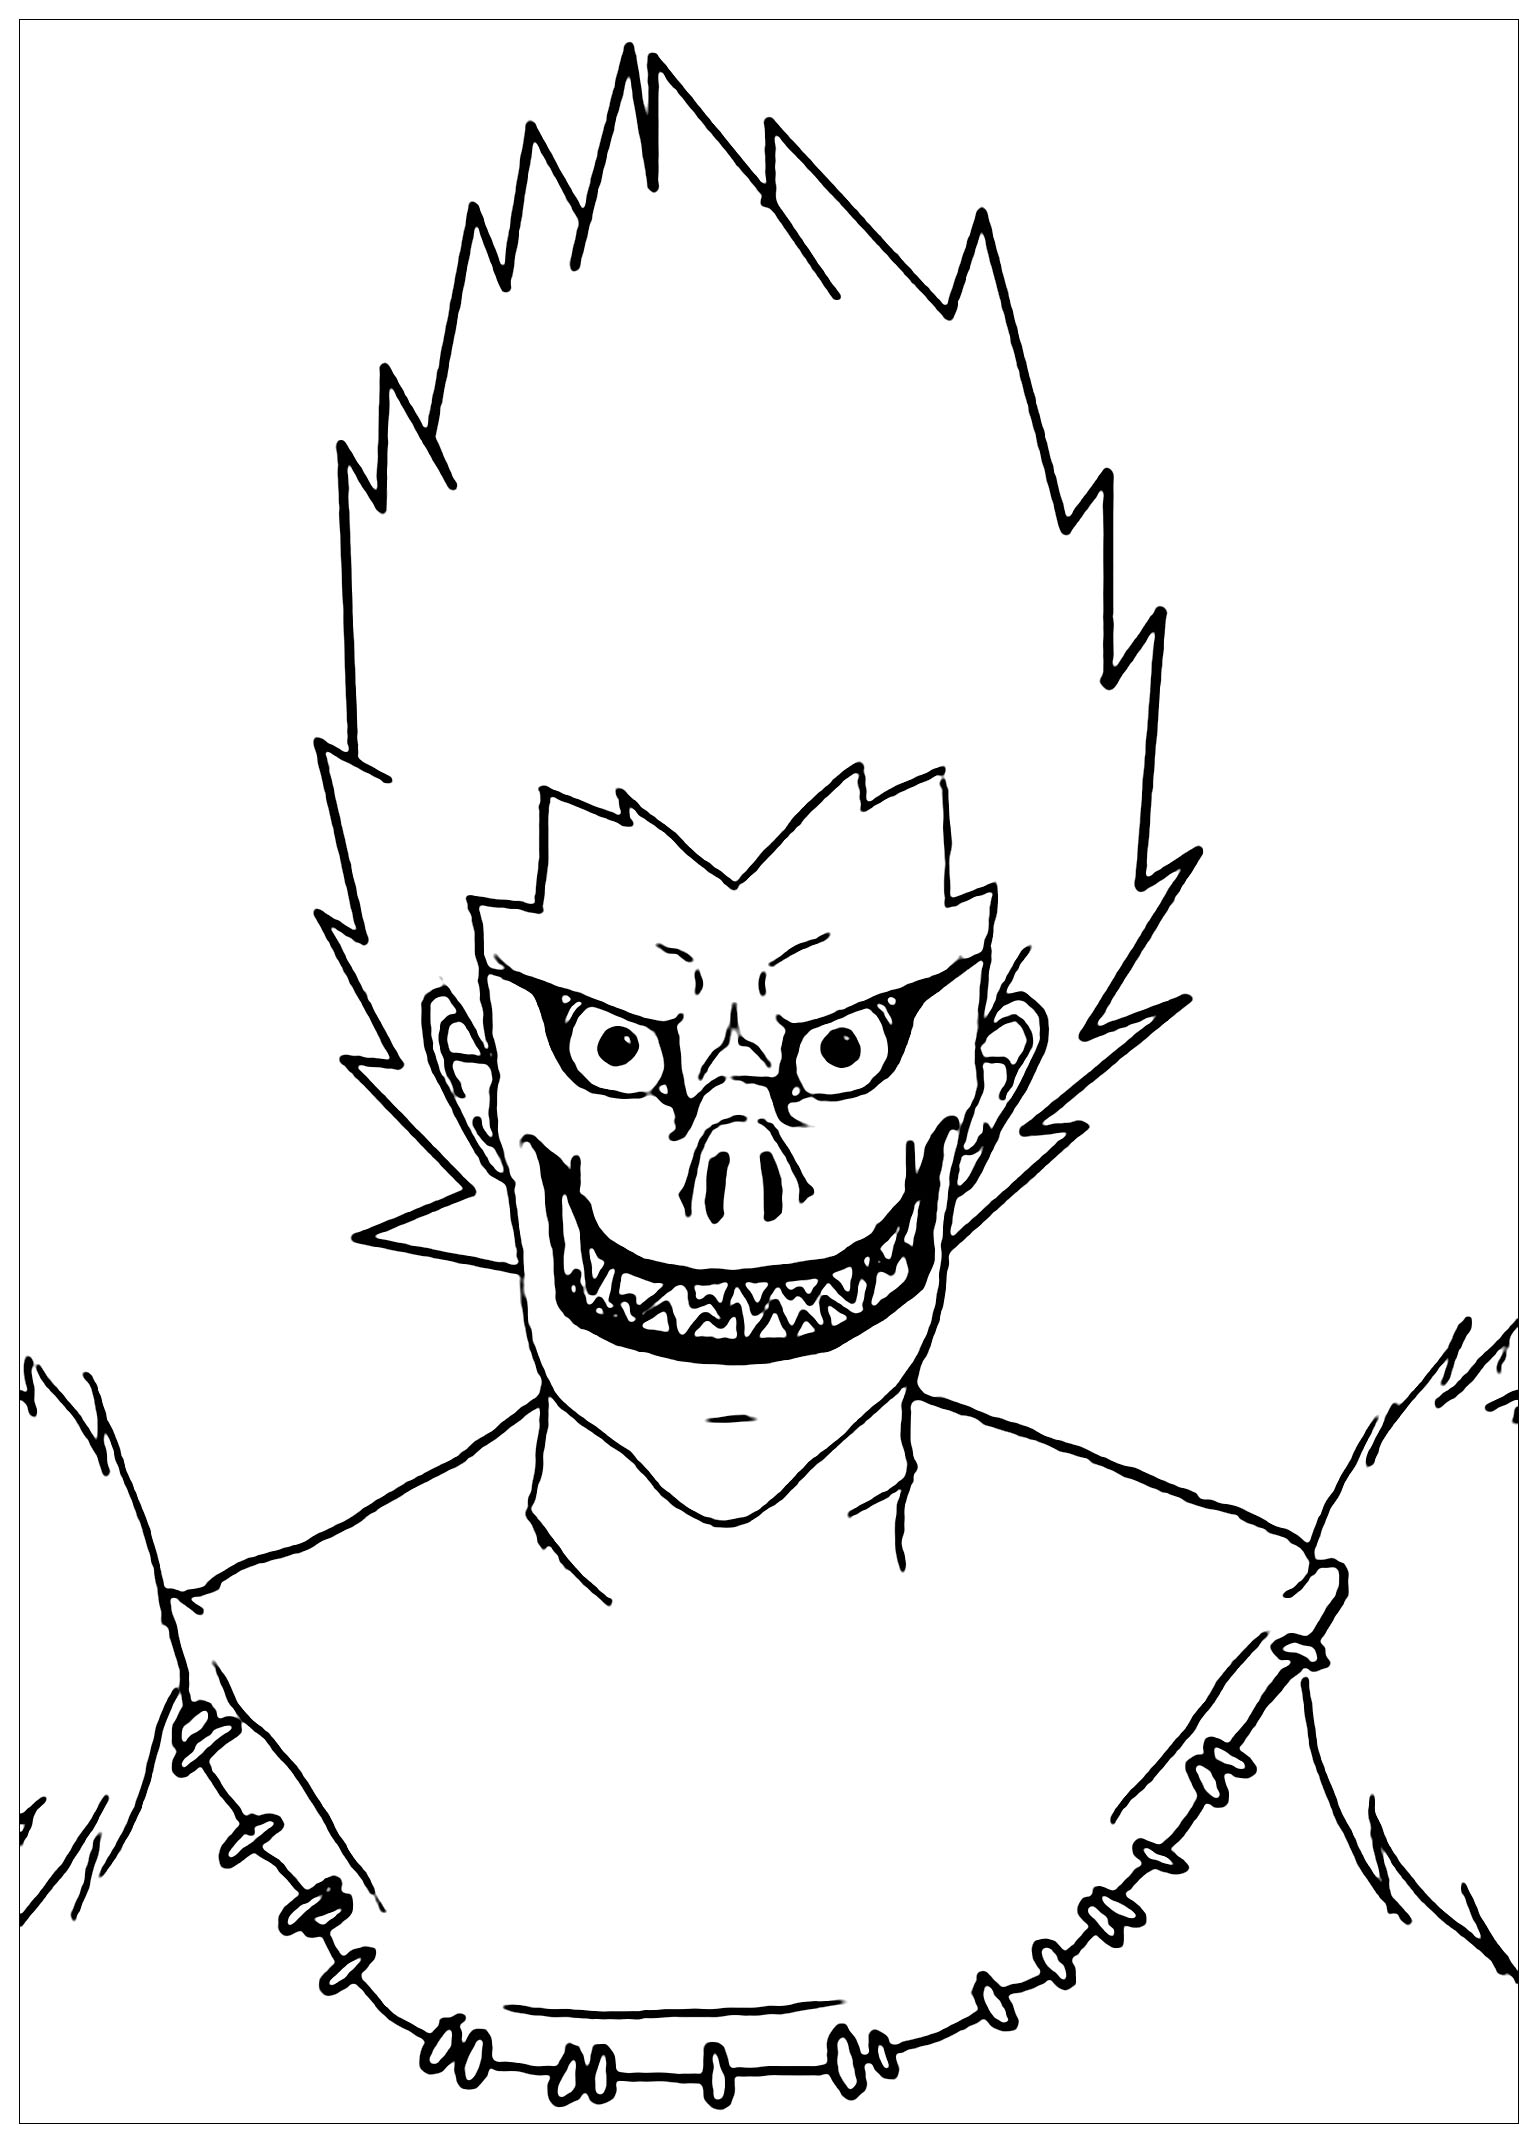 Death note coloring page to print and color for free